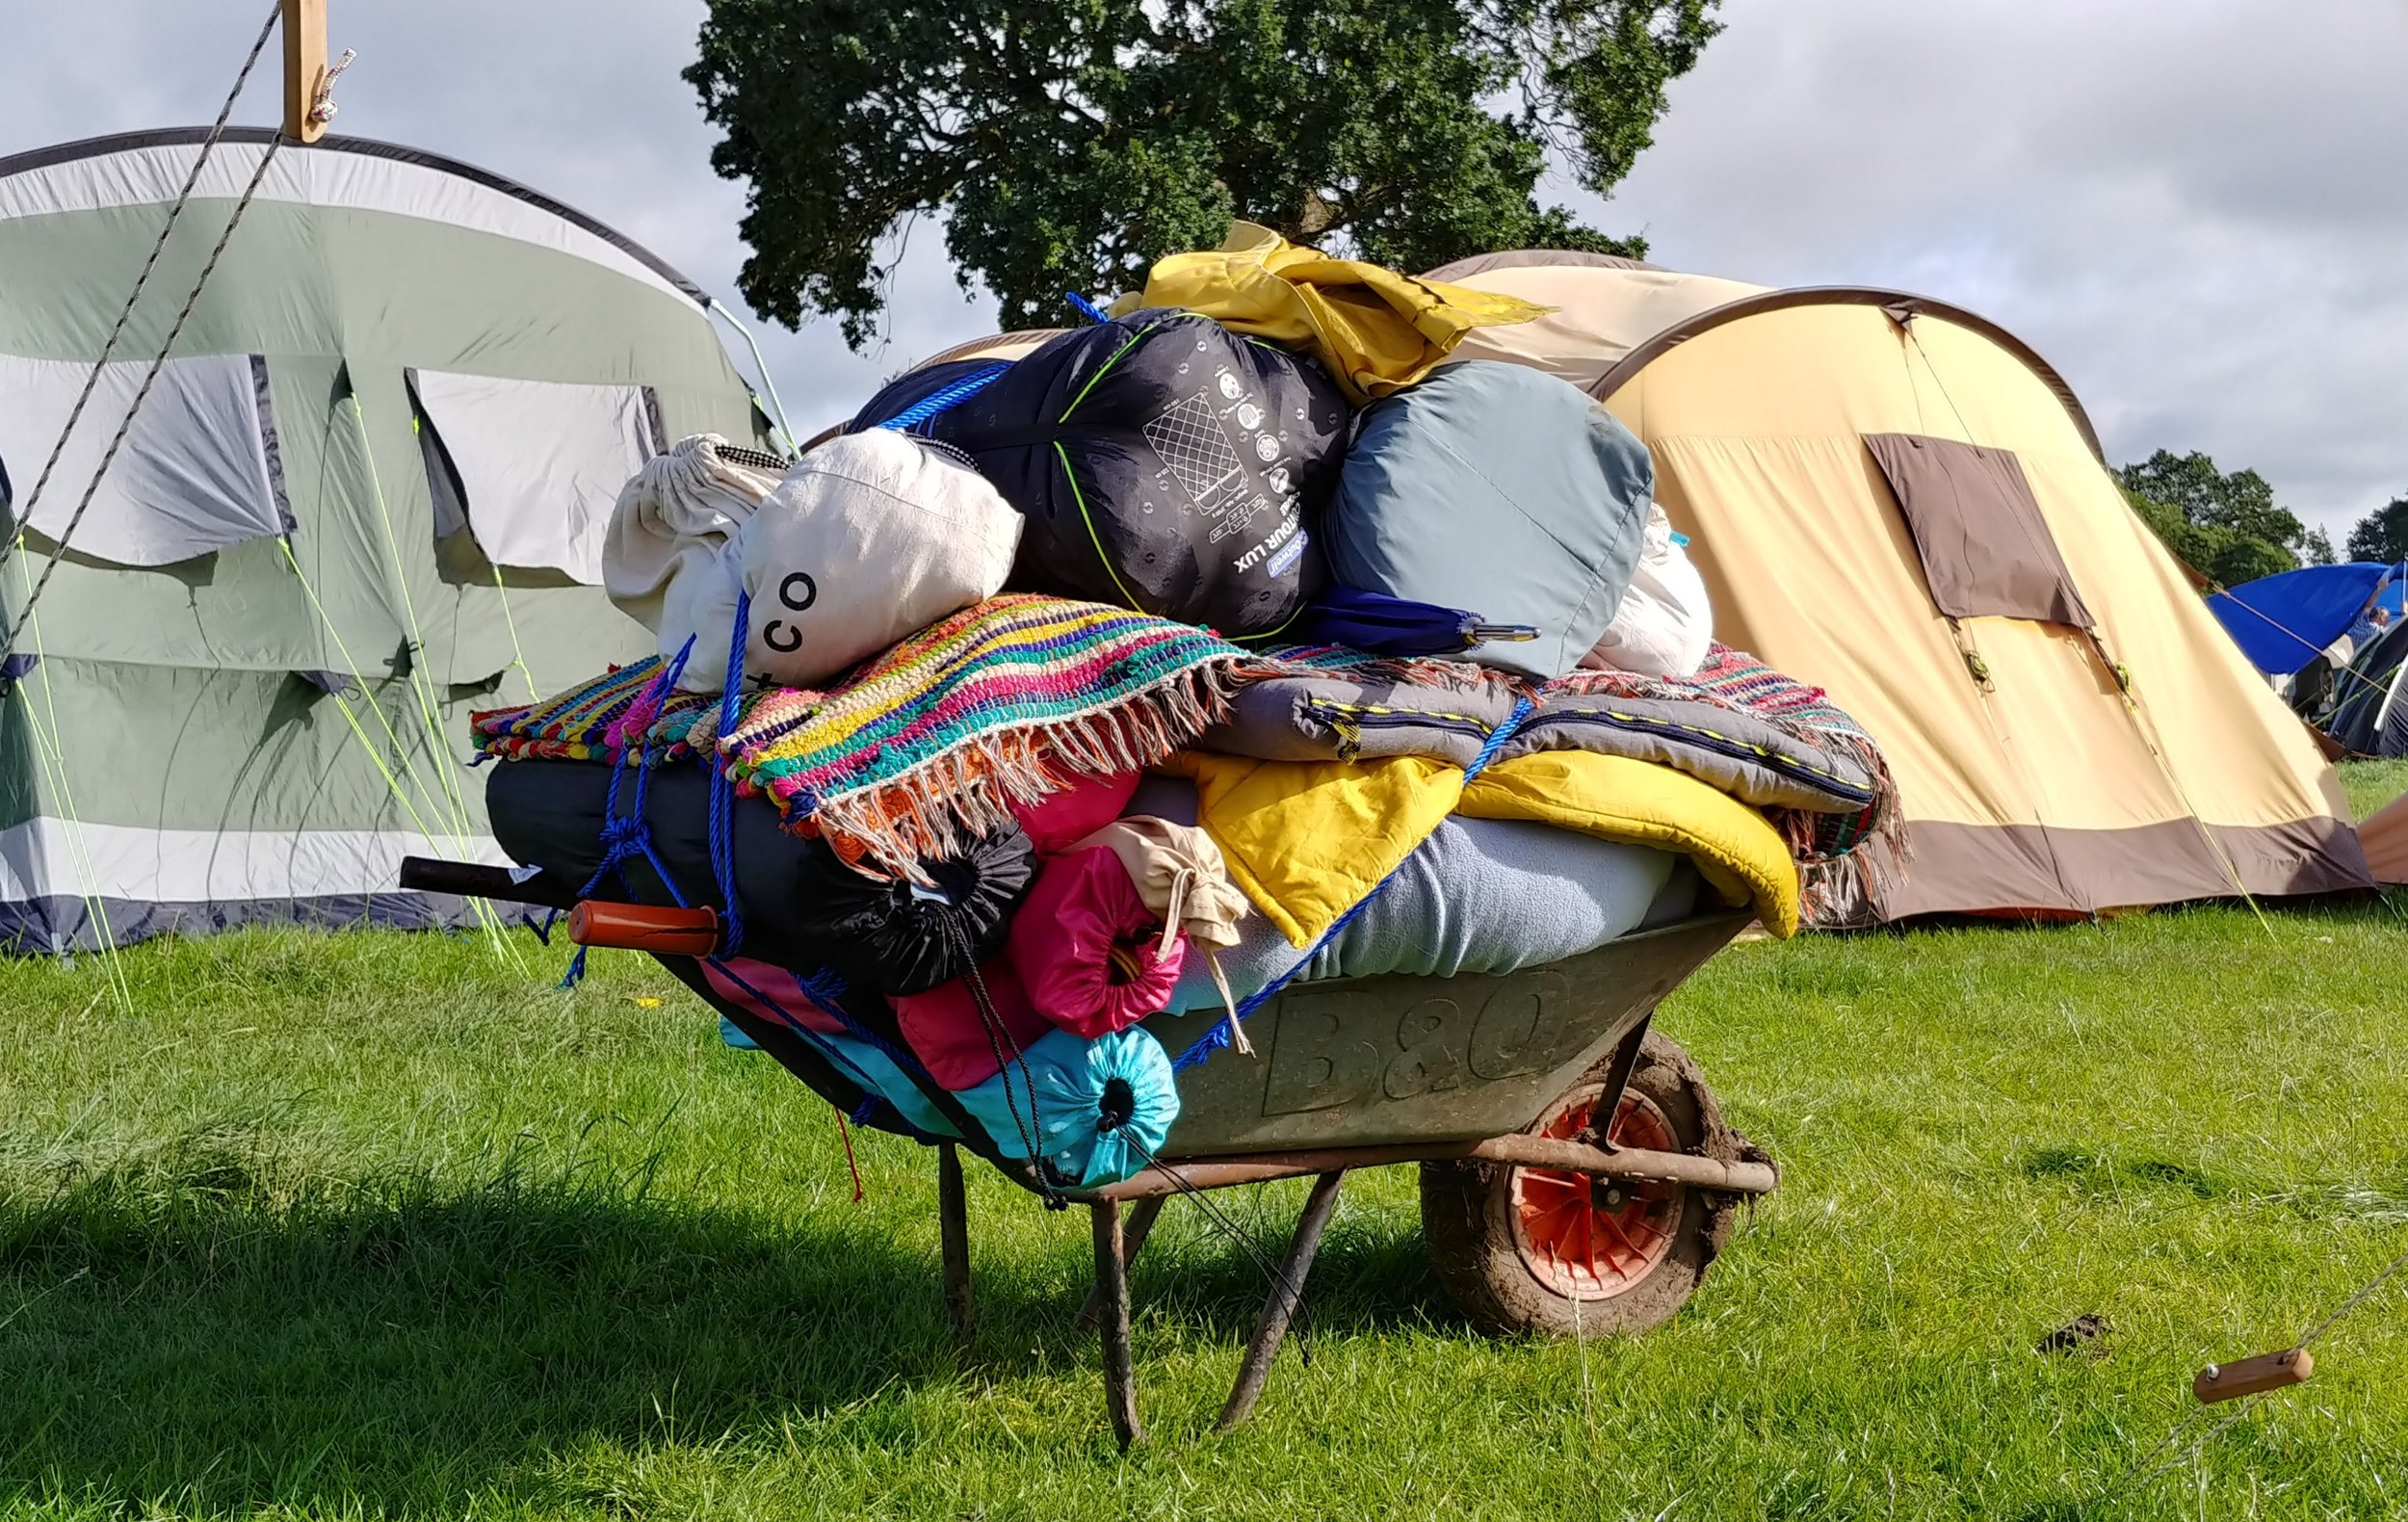 Rug, pillows, sleeping mats, chairs, sleeping bags, sacks of clothes and blankets.